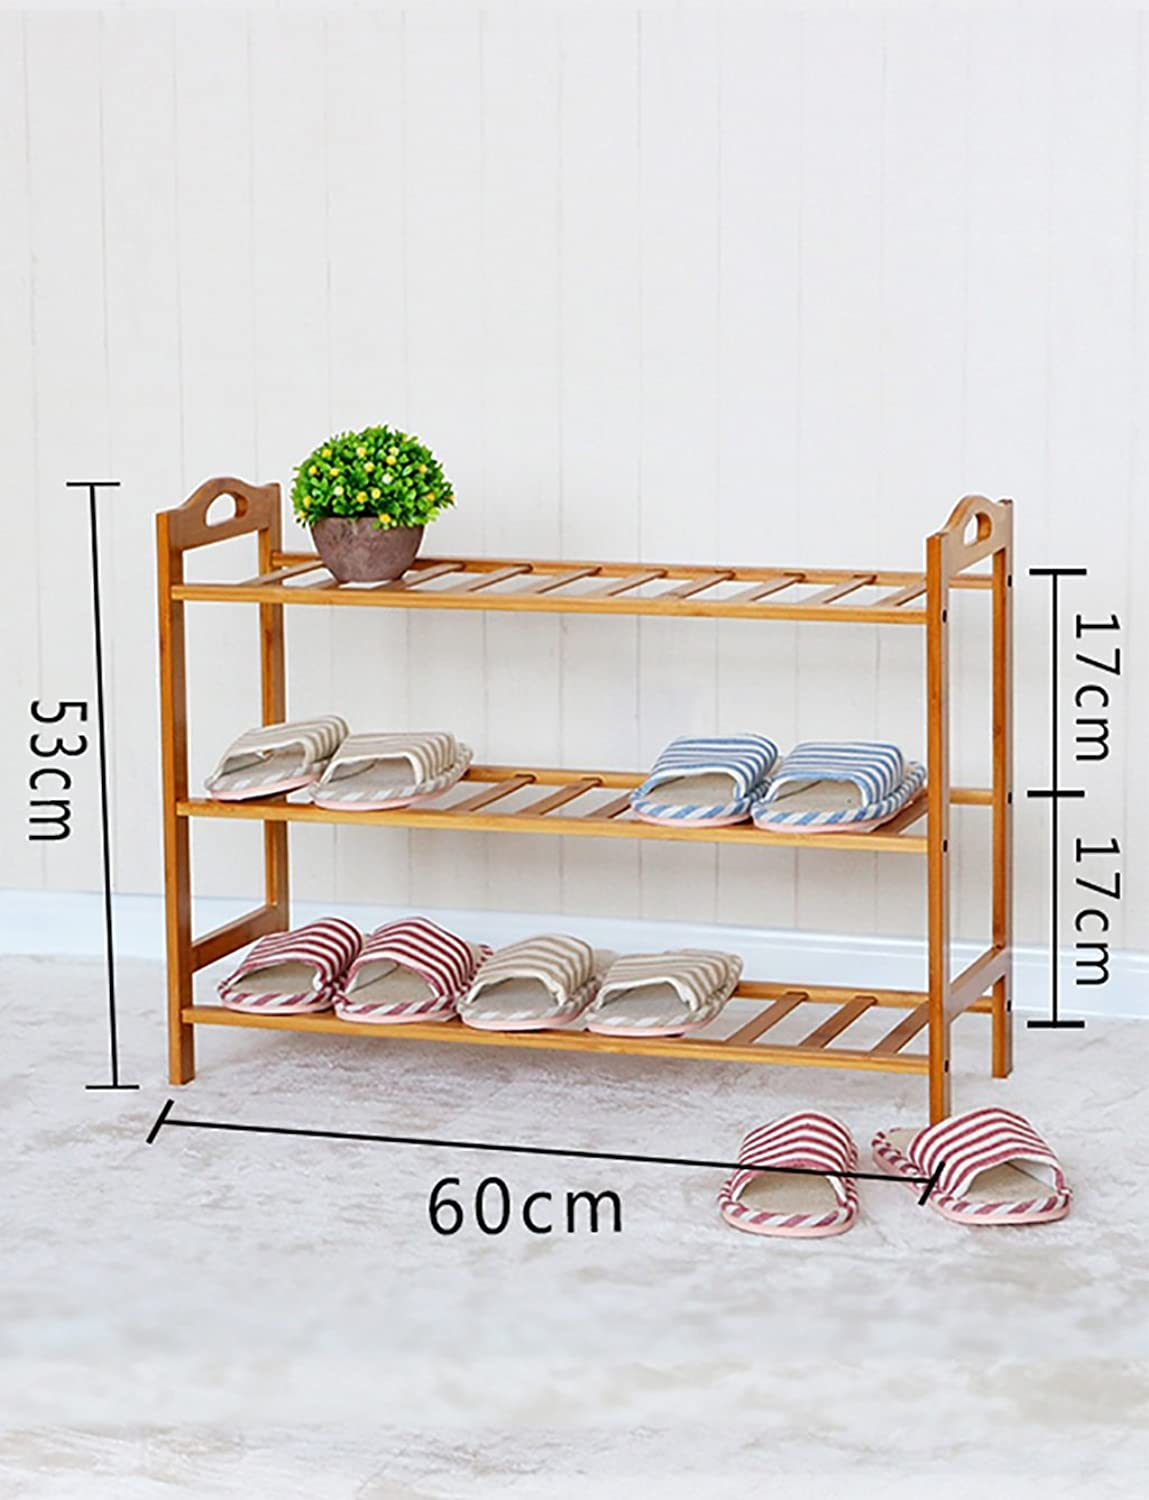 shoes Bench Organizing Rack Nanzhu Small shoes Rack Multi - Storey shoes Cabinet Solid Wood Storage shoes Rack j Simple Modern Assembly Living Room shoes Rack (Size   60cm)